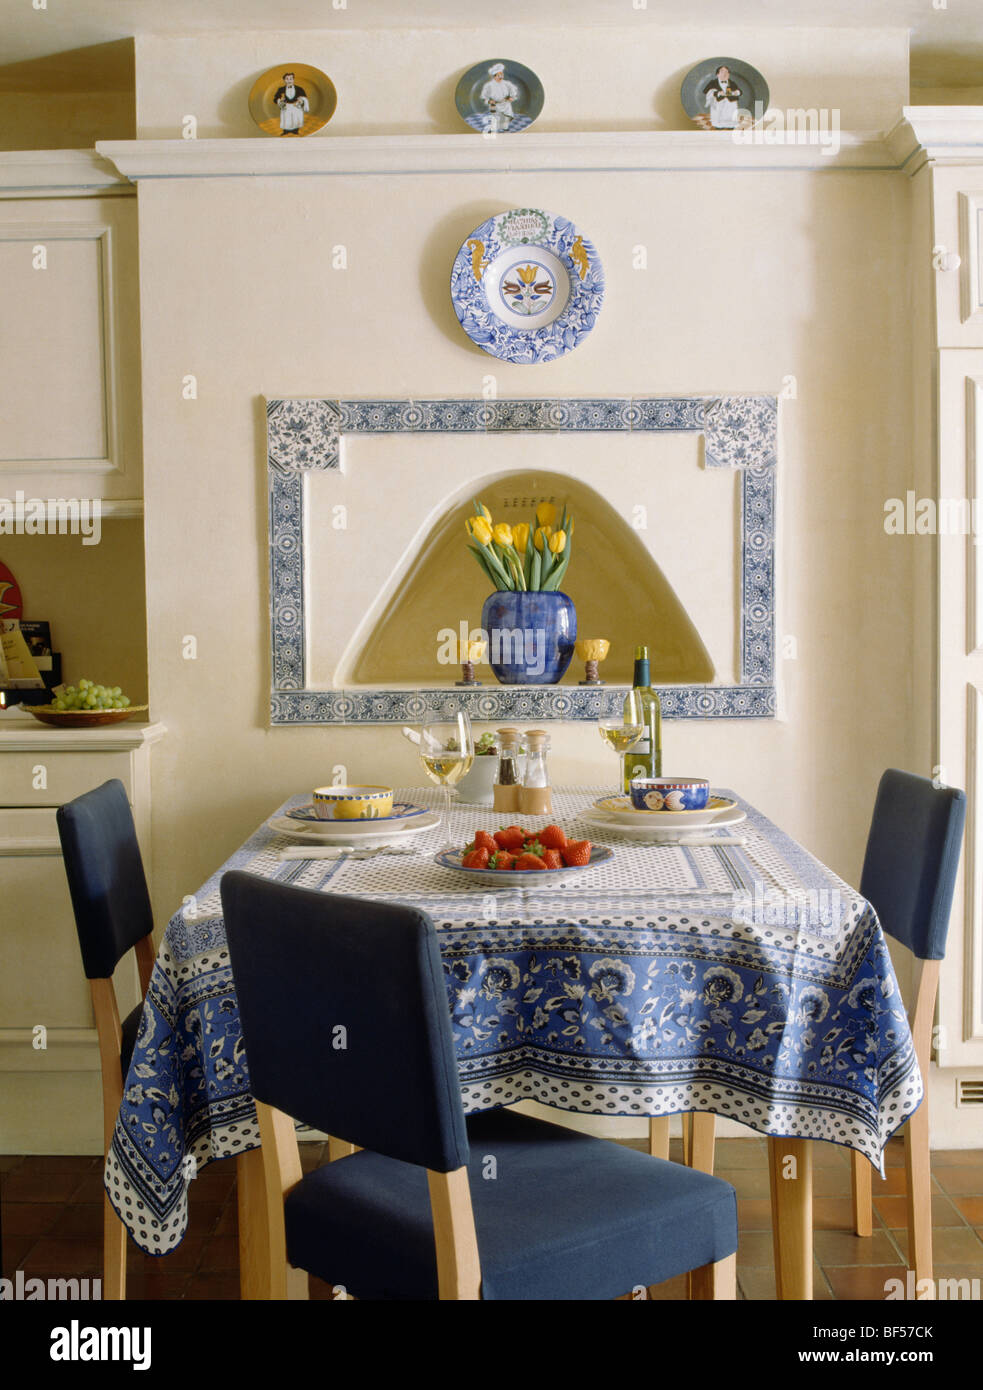 blue patterned tablecloth on table with dark blue upholstered